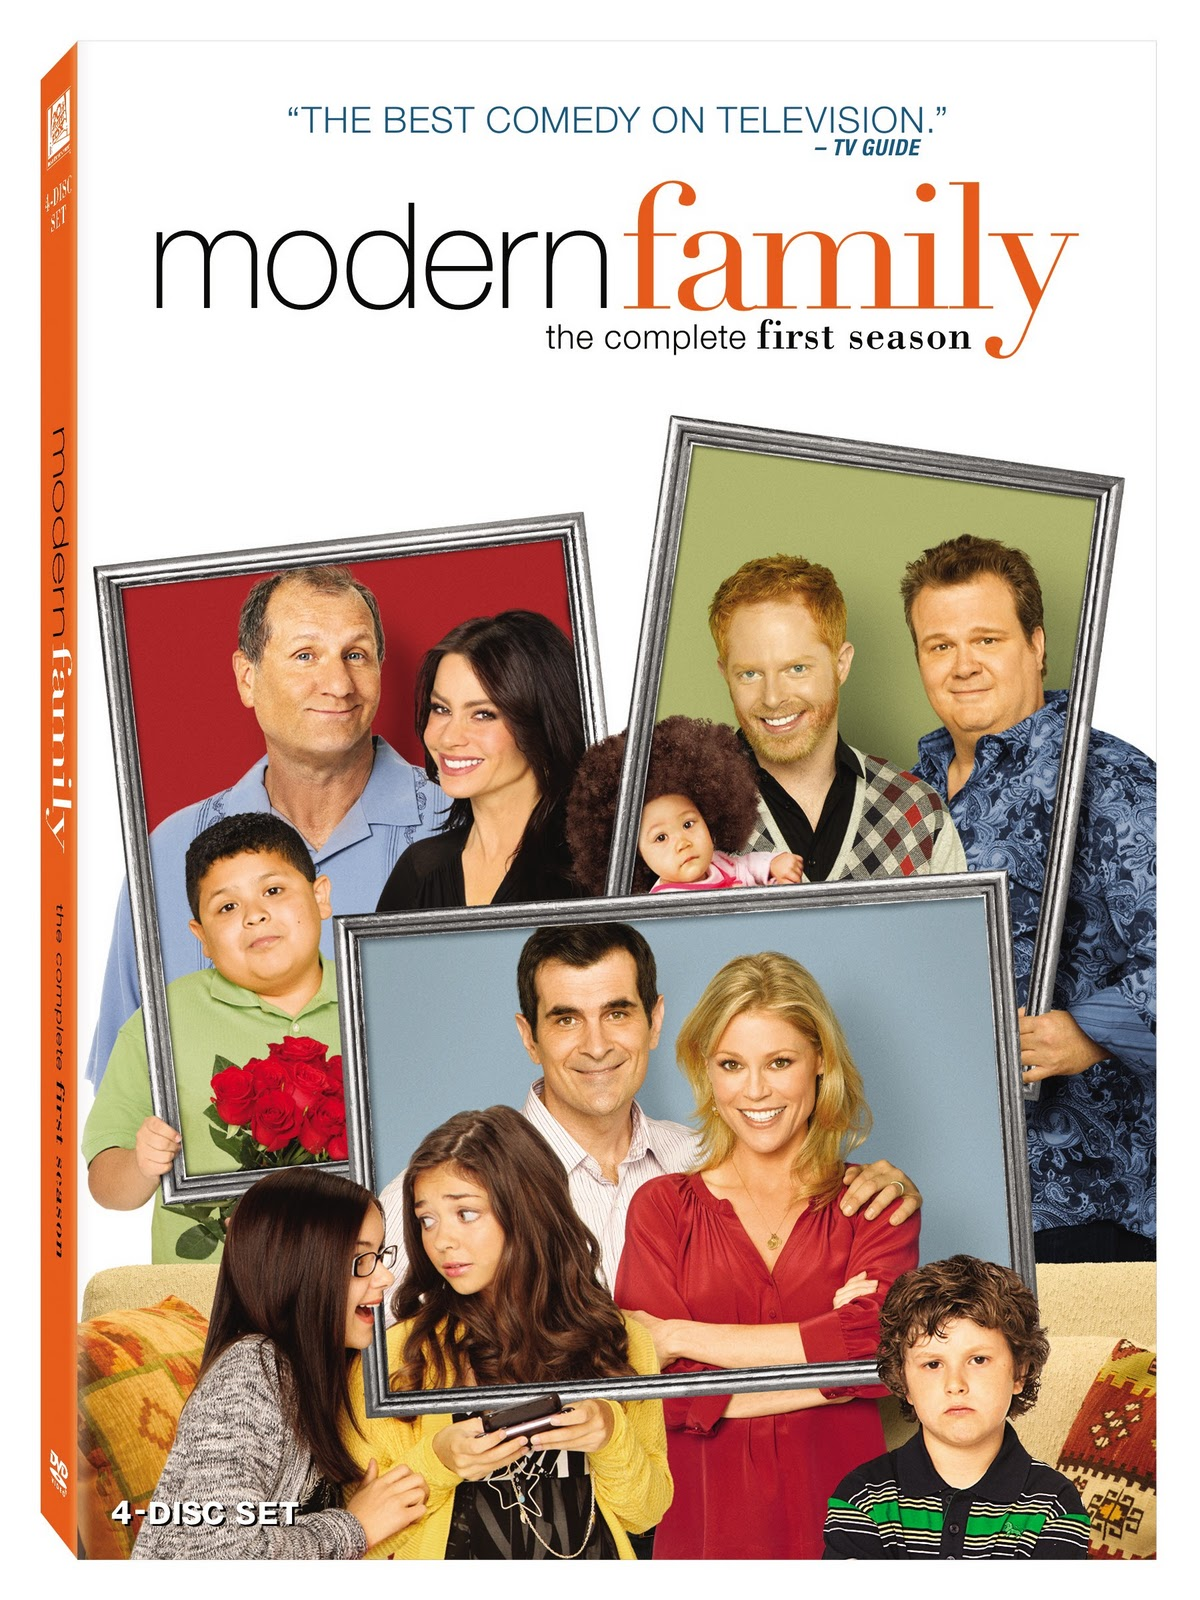 modern family the complete season review giveaway closed outnumbered 3 to 1